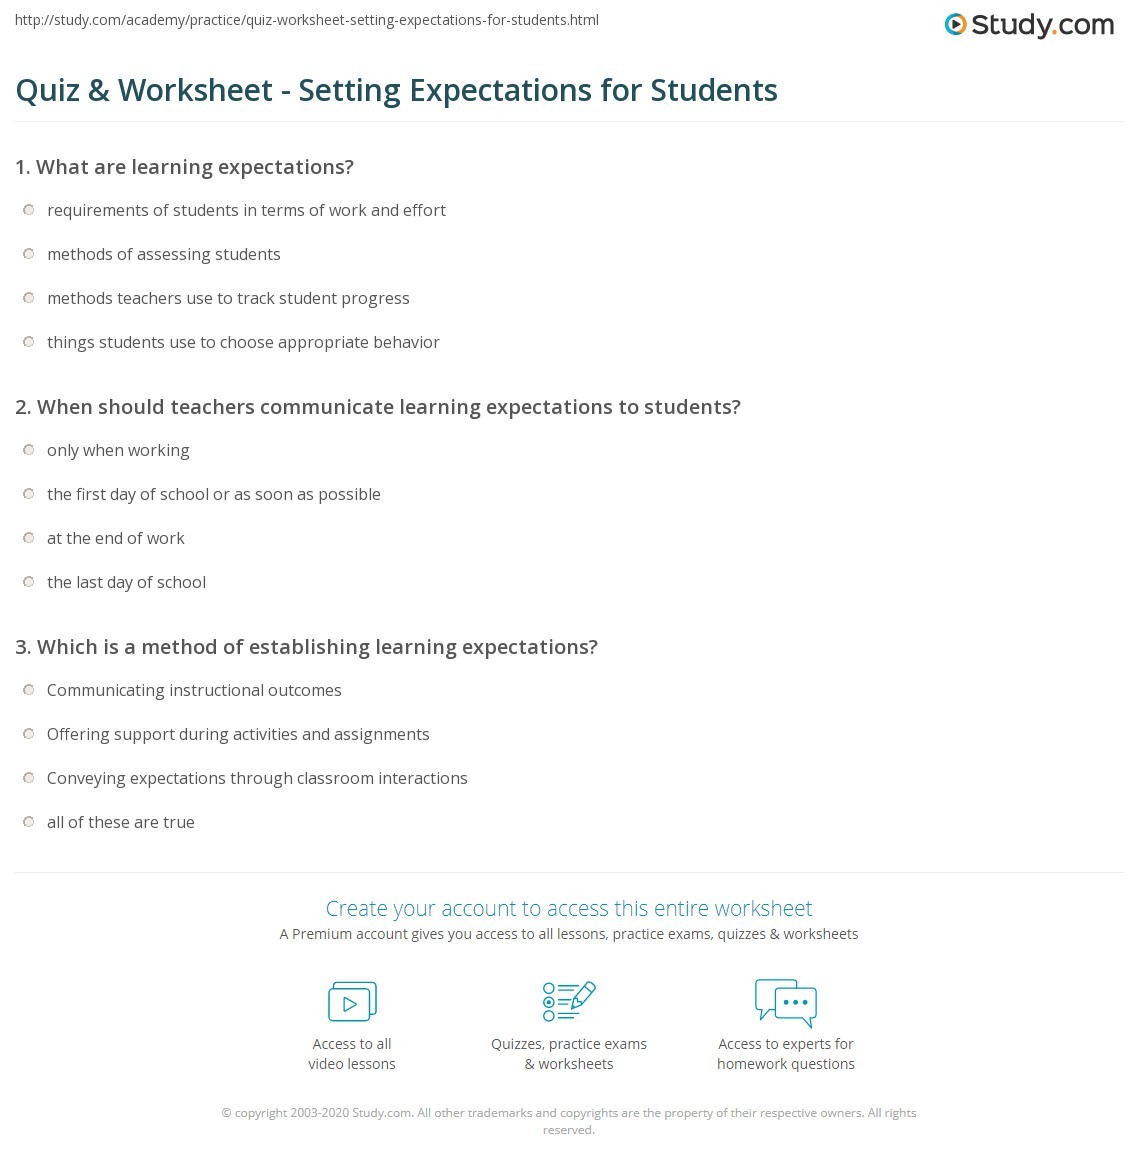 Quiz & Worksheet - Setting Expectations for Students | Study.com